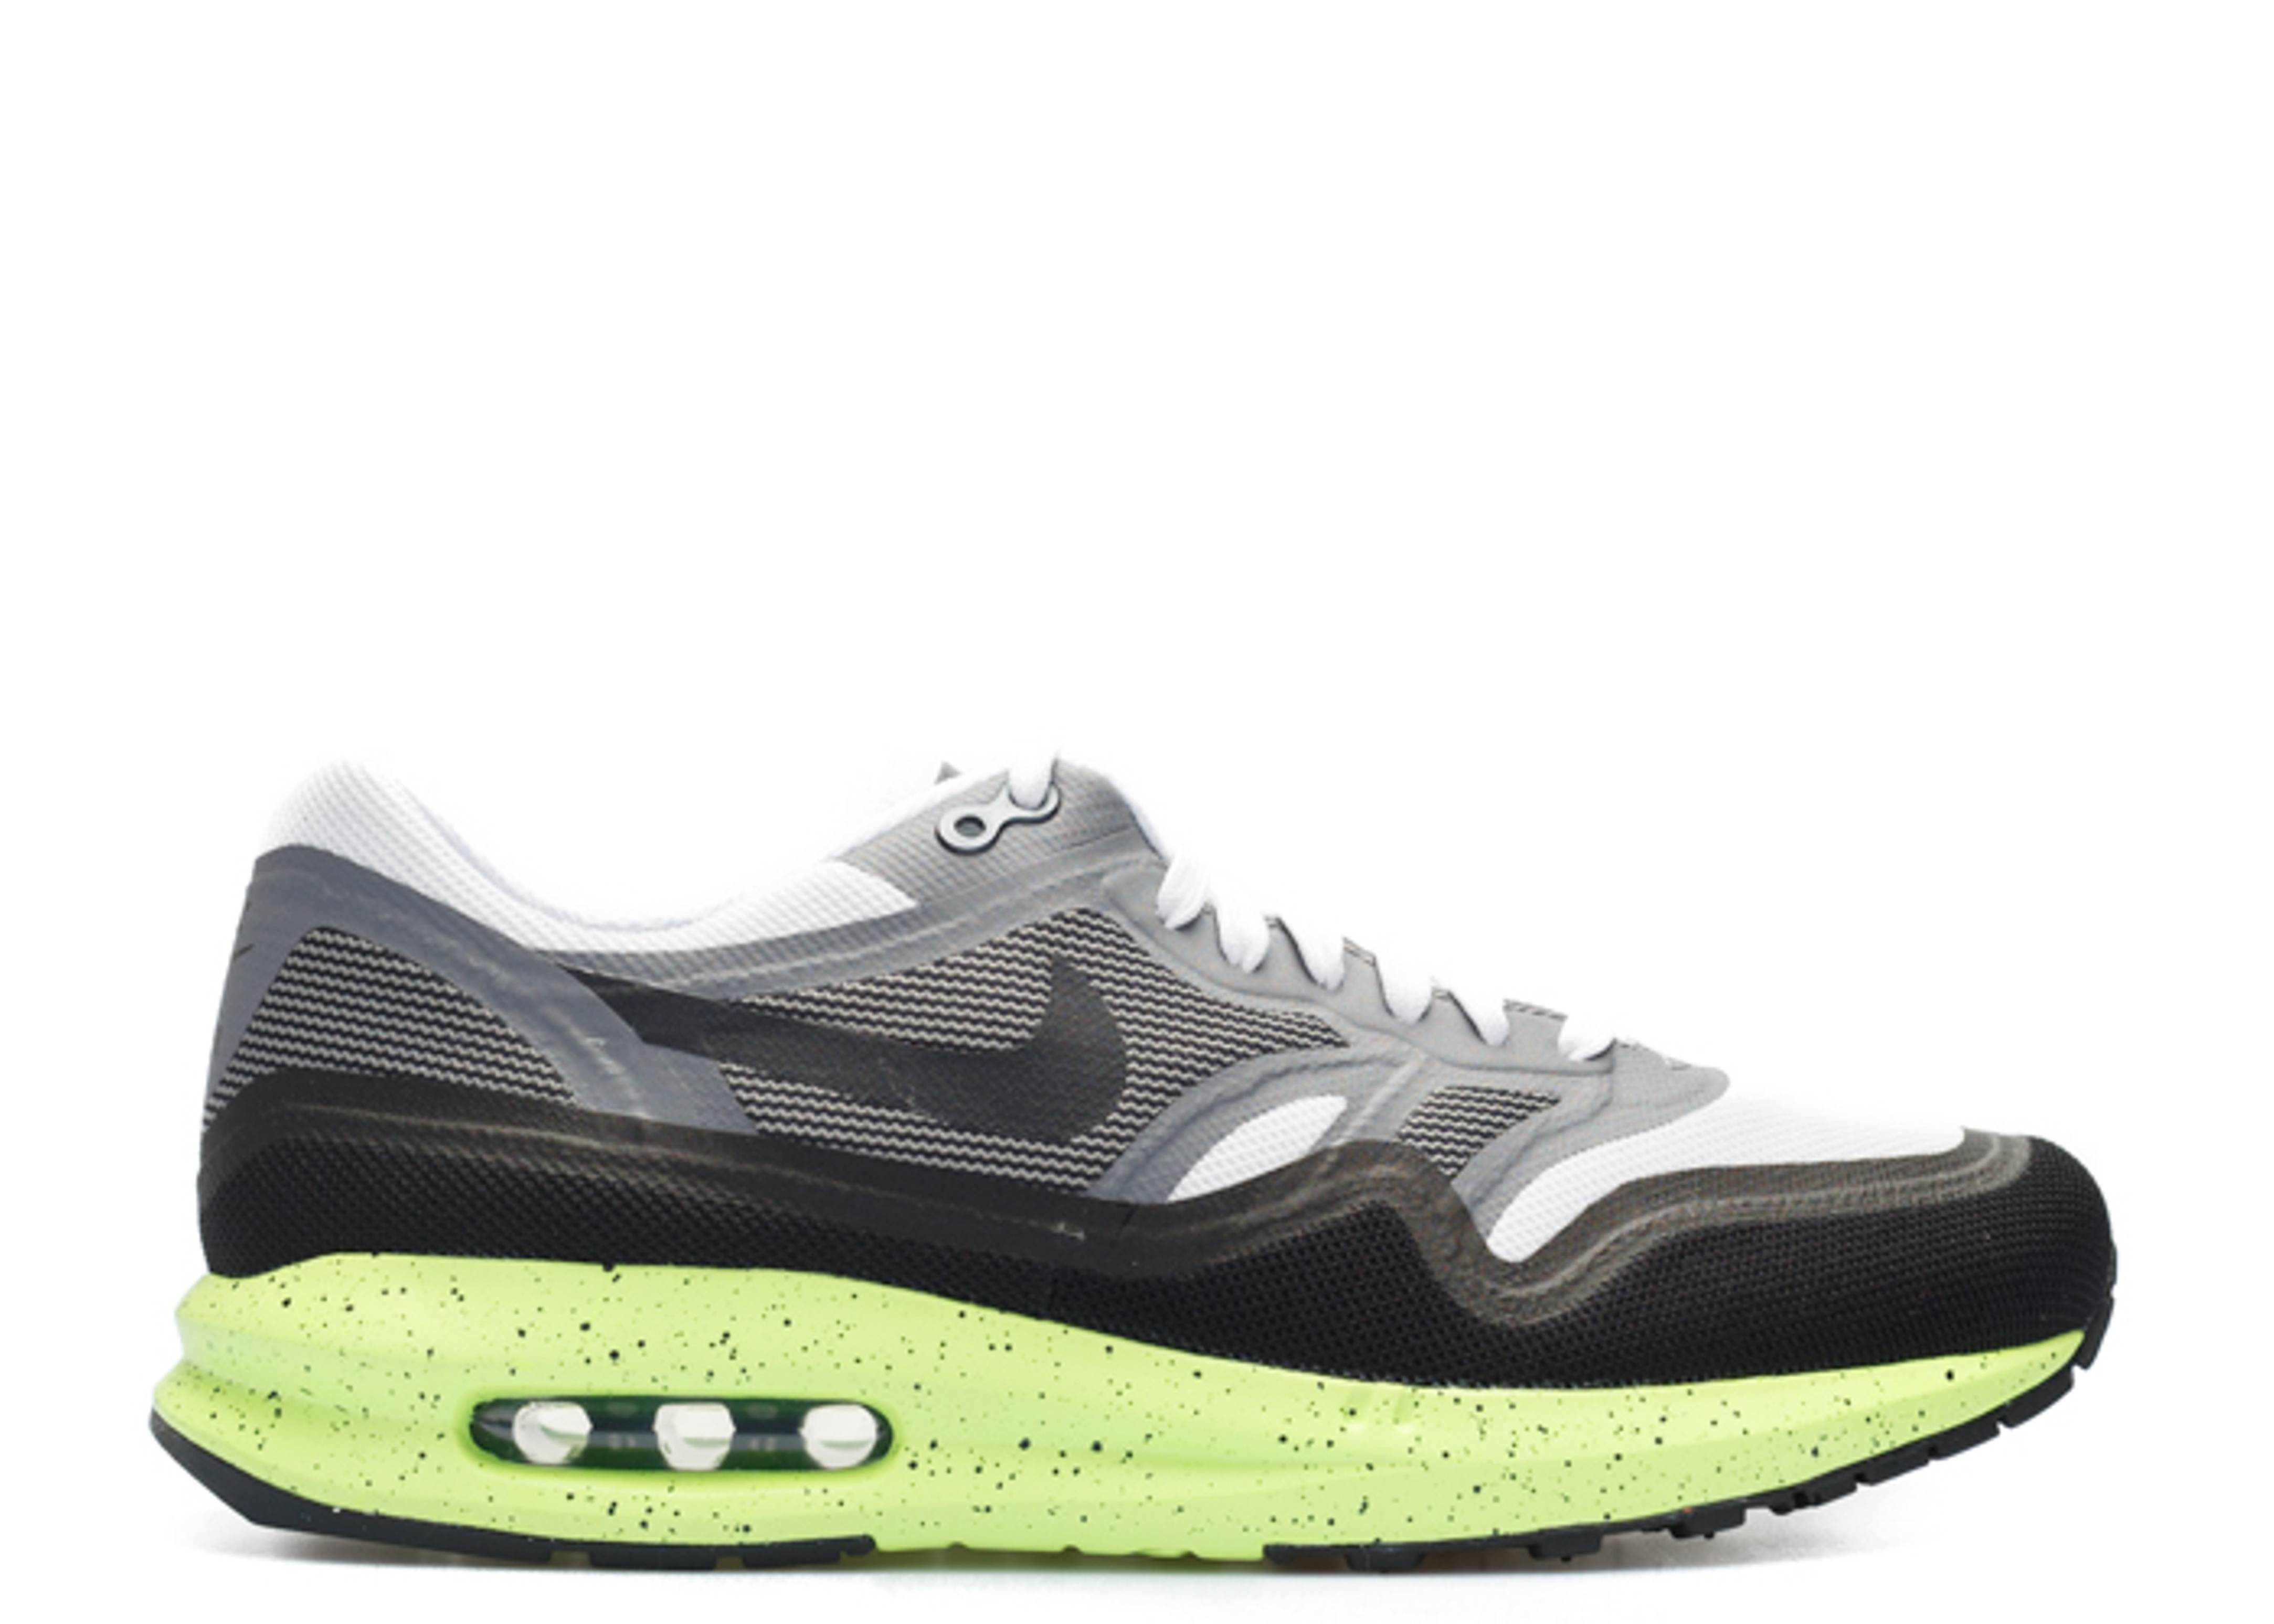 new style womens nike air max lunar 1 running shoes yeezy